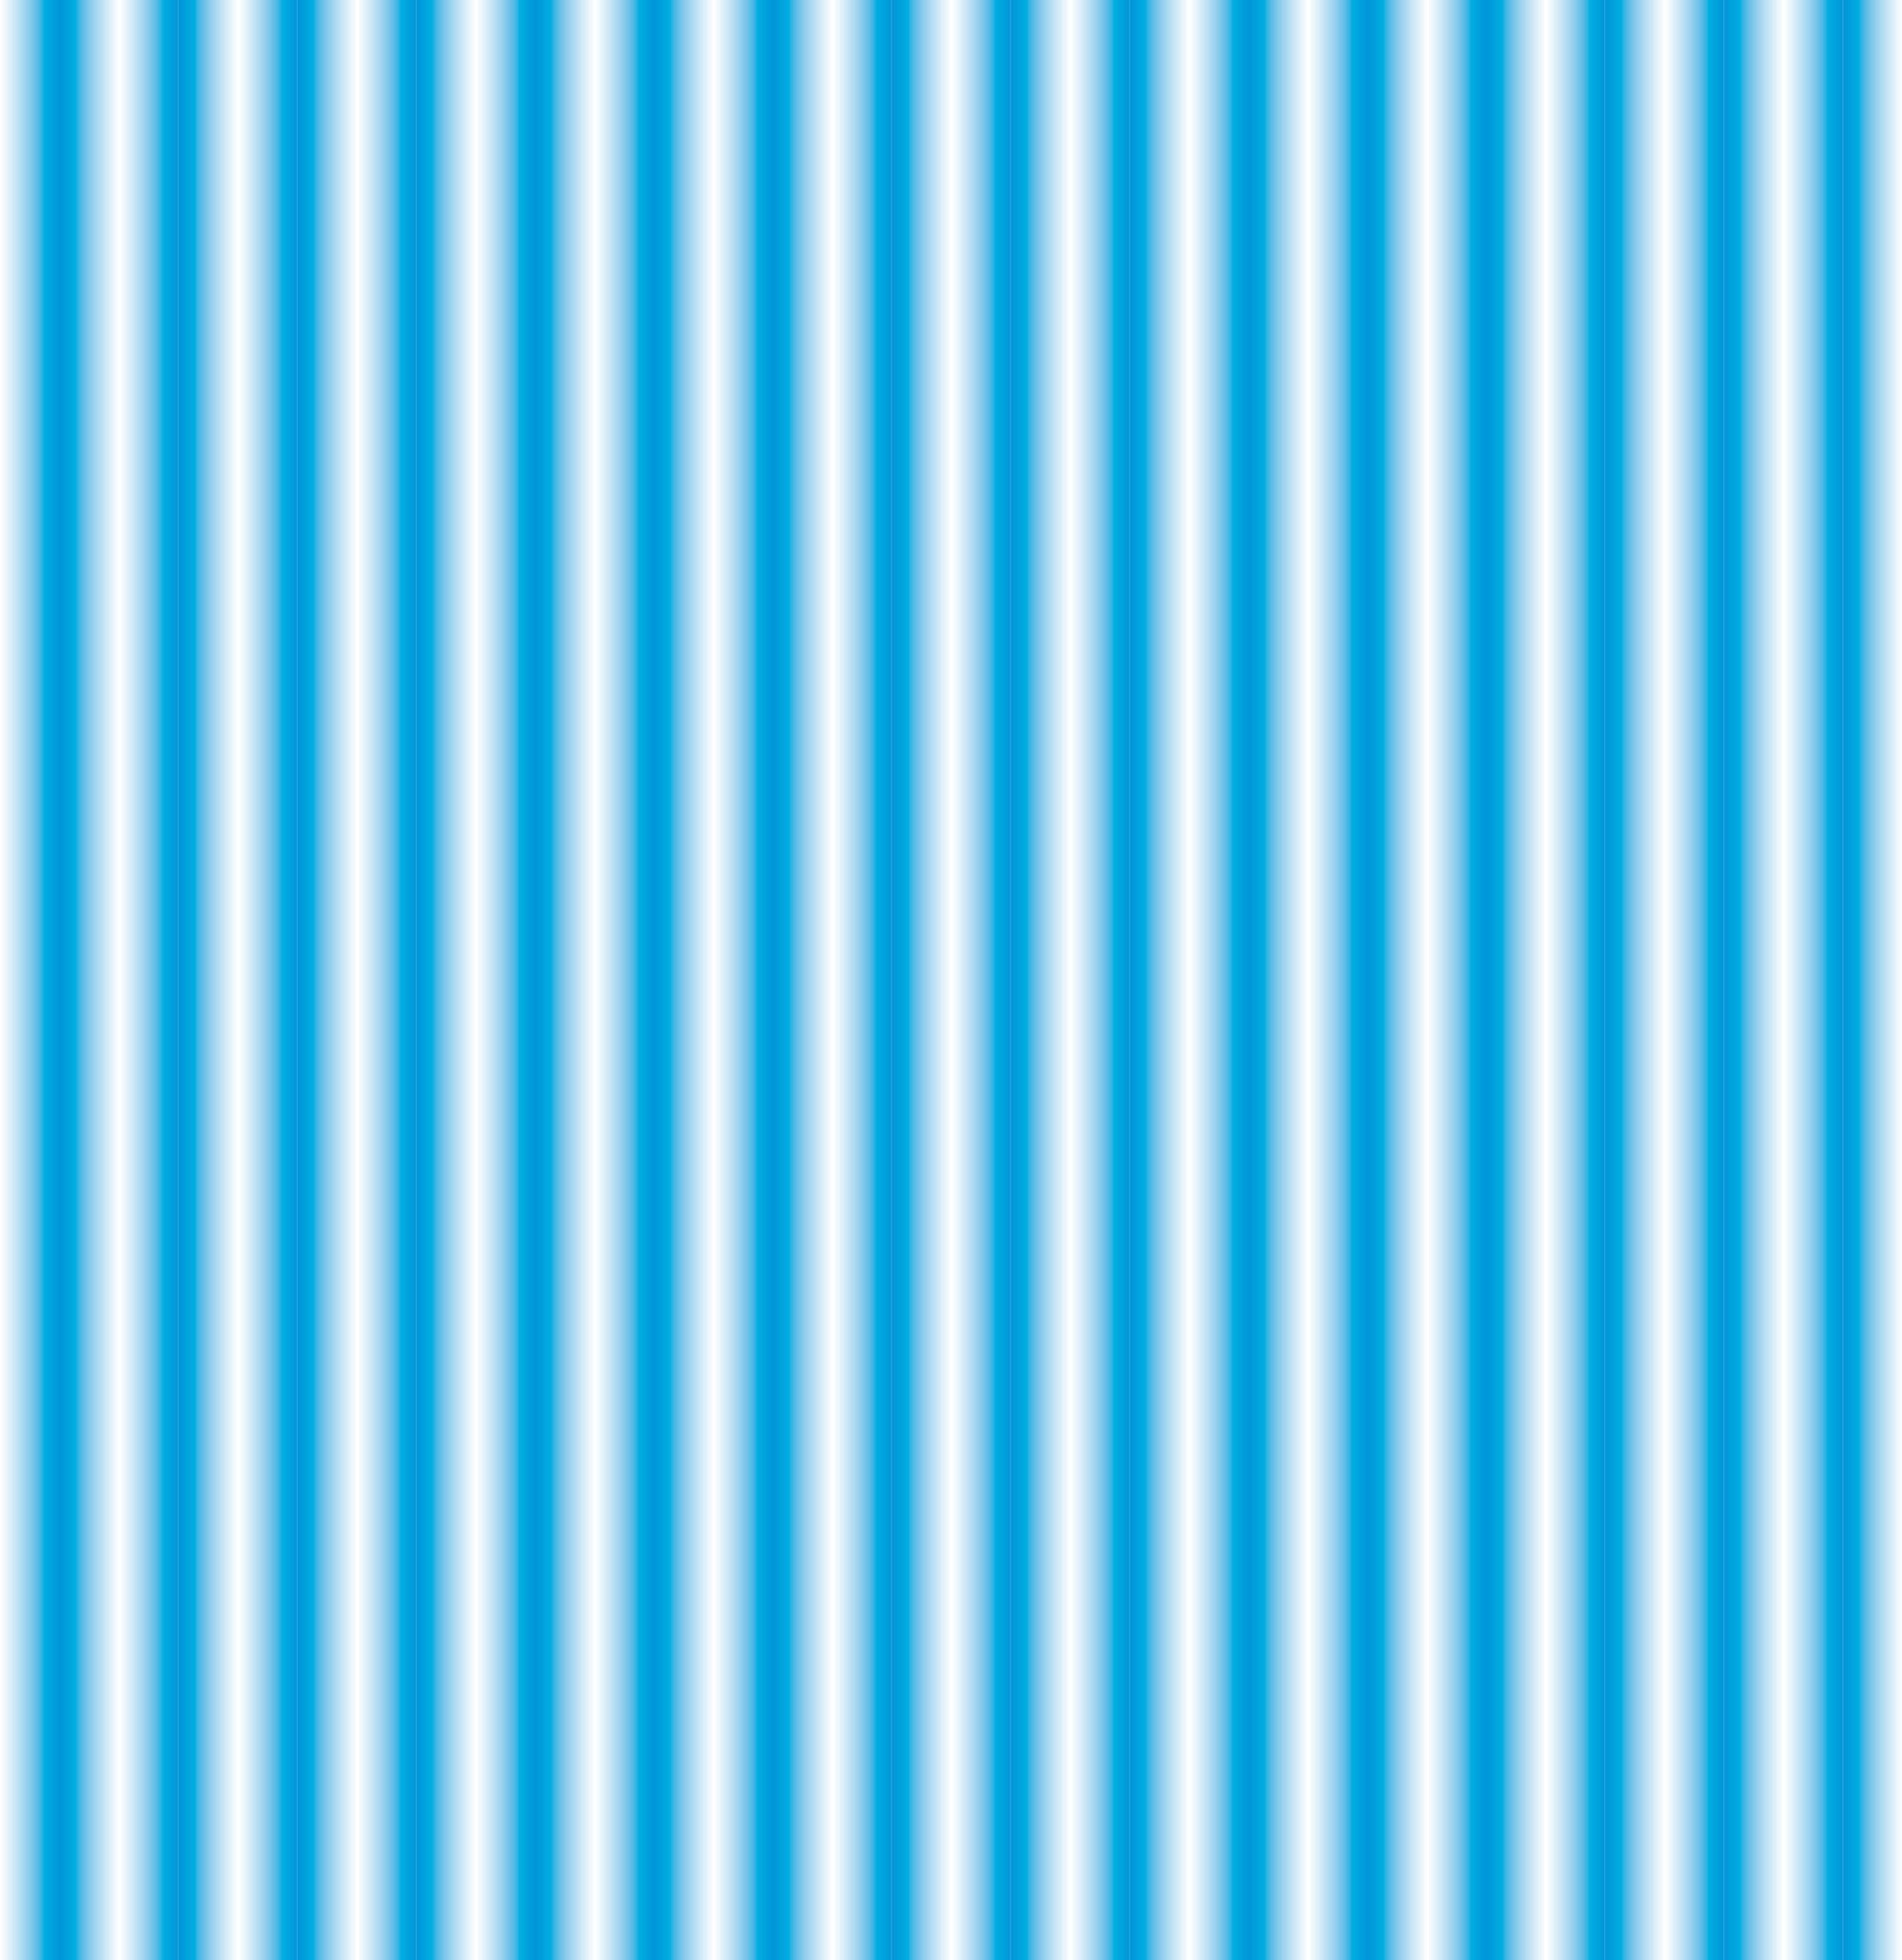 Blue and white striped wallpaper wallpapersafari for Blue and white wallpaper